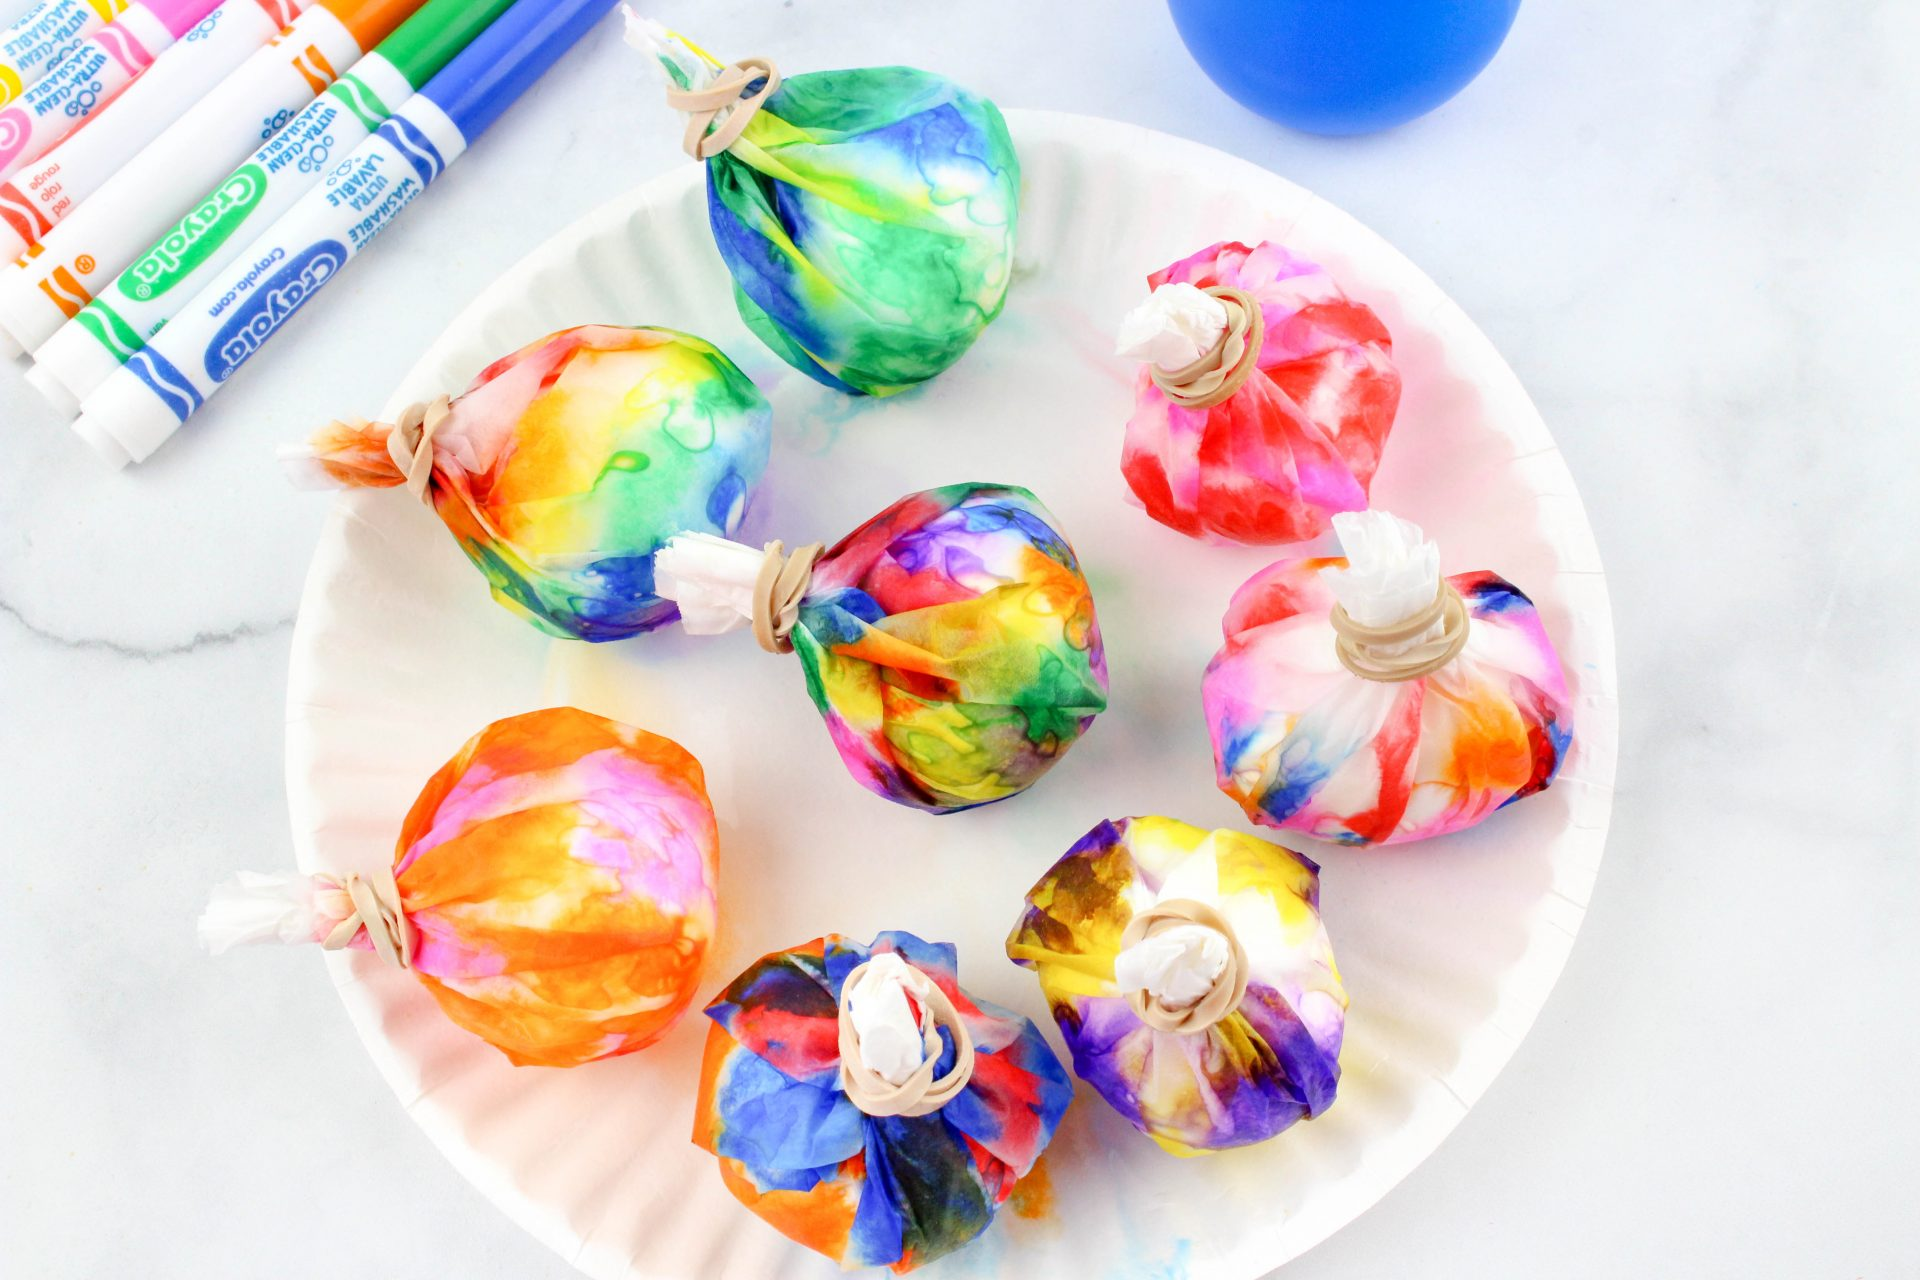 This is an easy and fun way for the kids to dye Easter eggs. As an added bonus, it makes much less of a mess than other ways to dye Easter eggs!